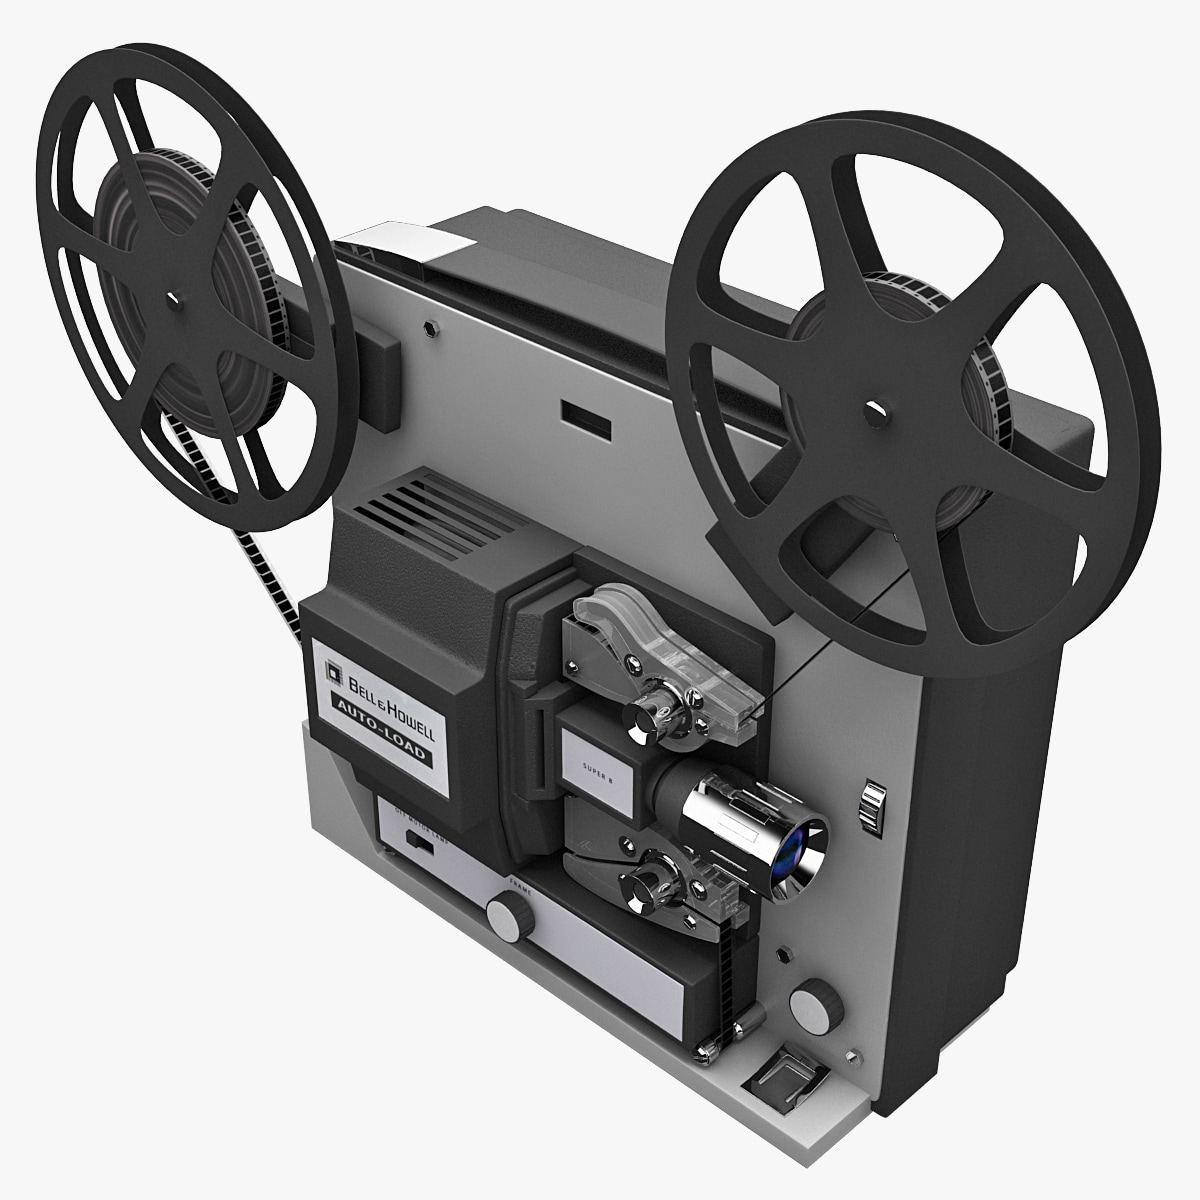 Old_Movie_Projector_Bell_and_Howell_8mm_Model_461A_0002.jpg